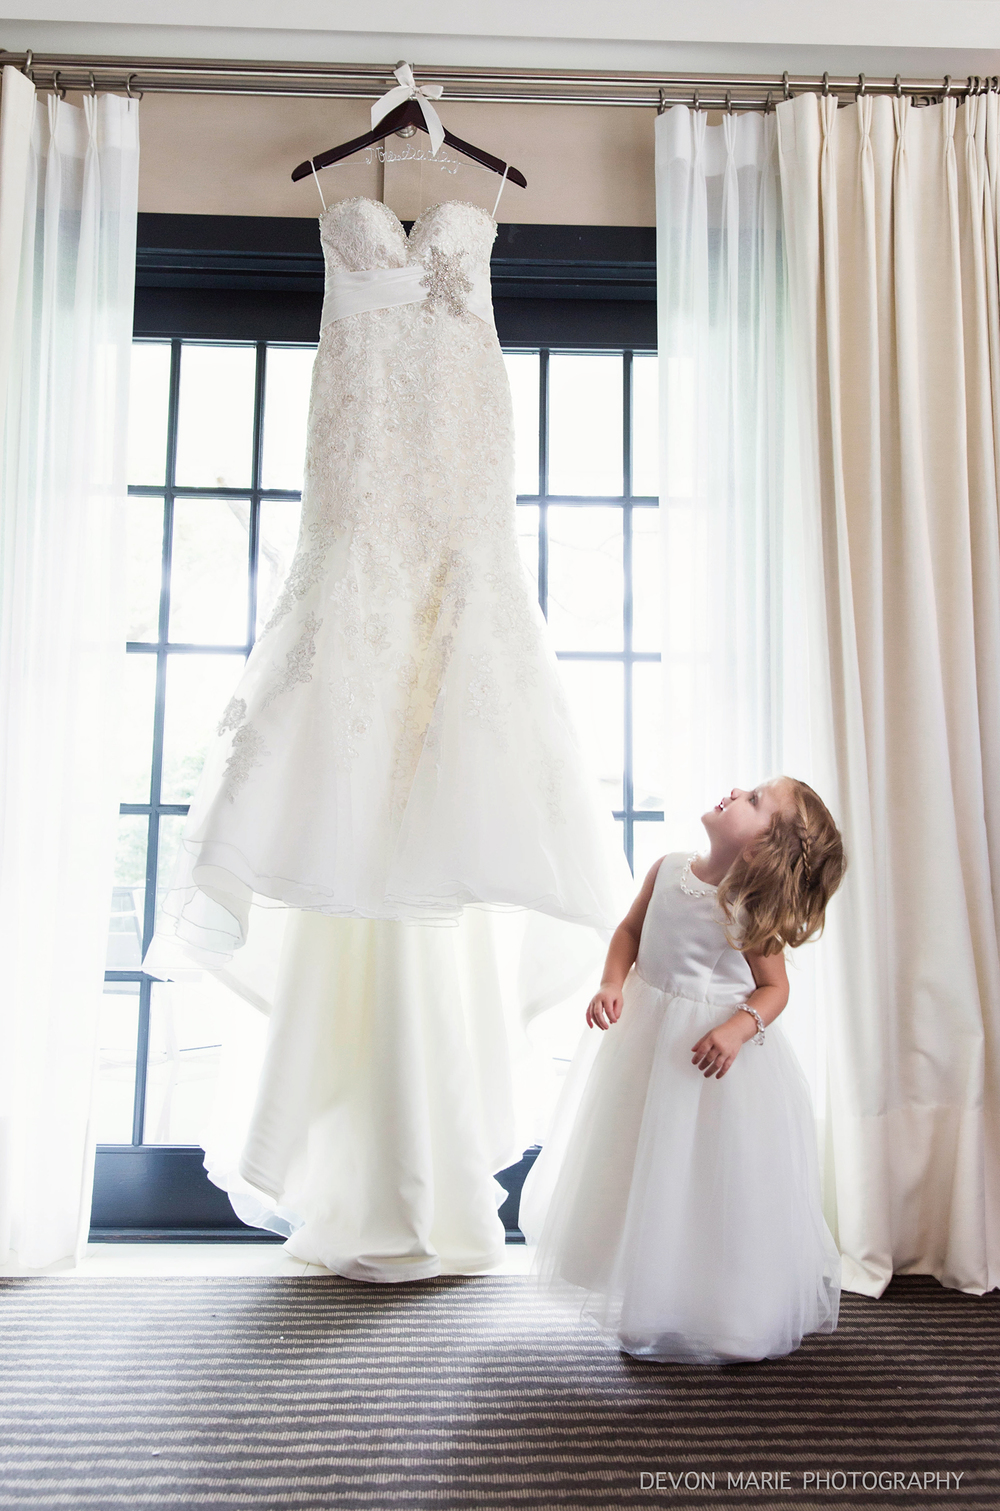 Cameron looking up at her mommy's dress! Love this shot!